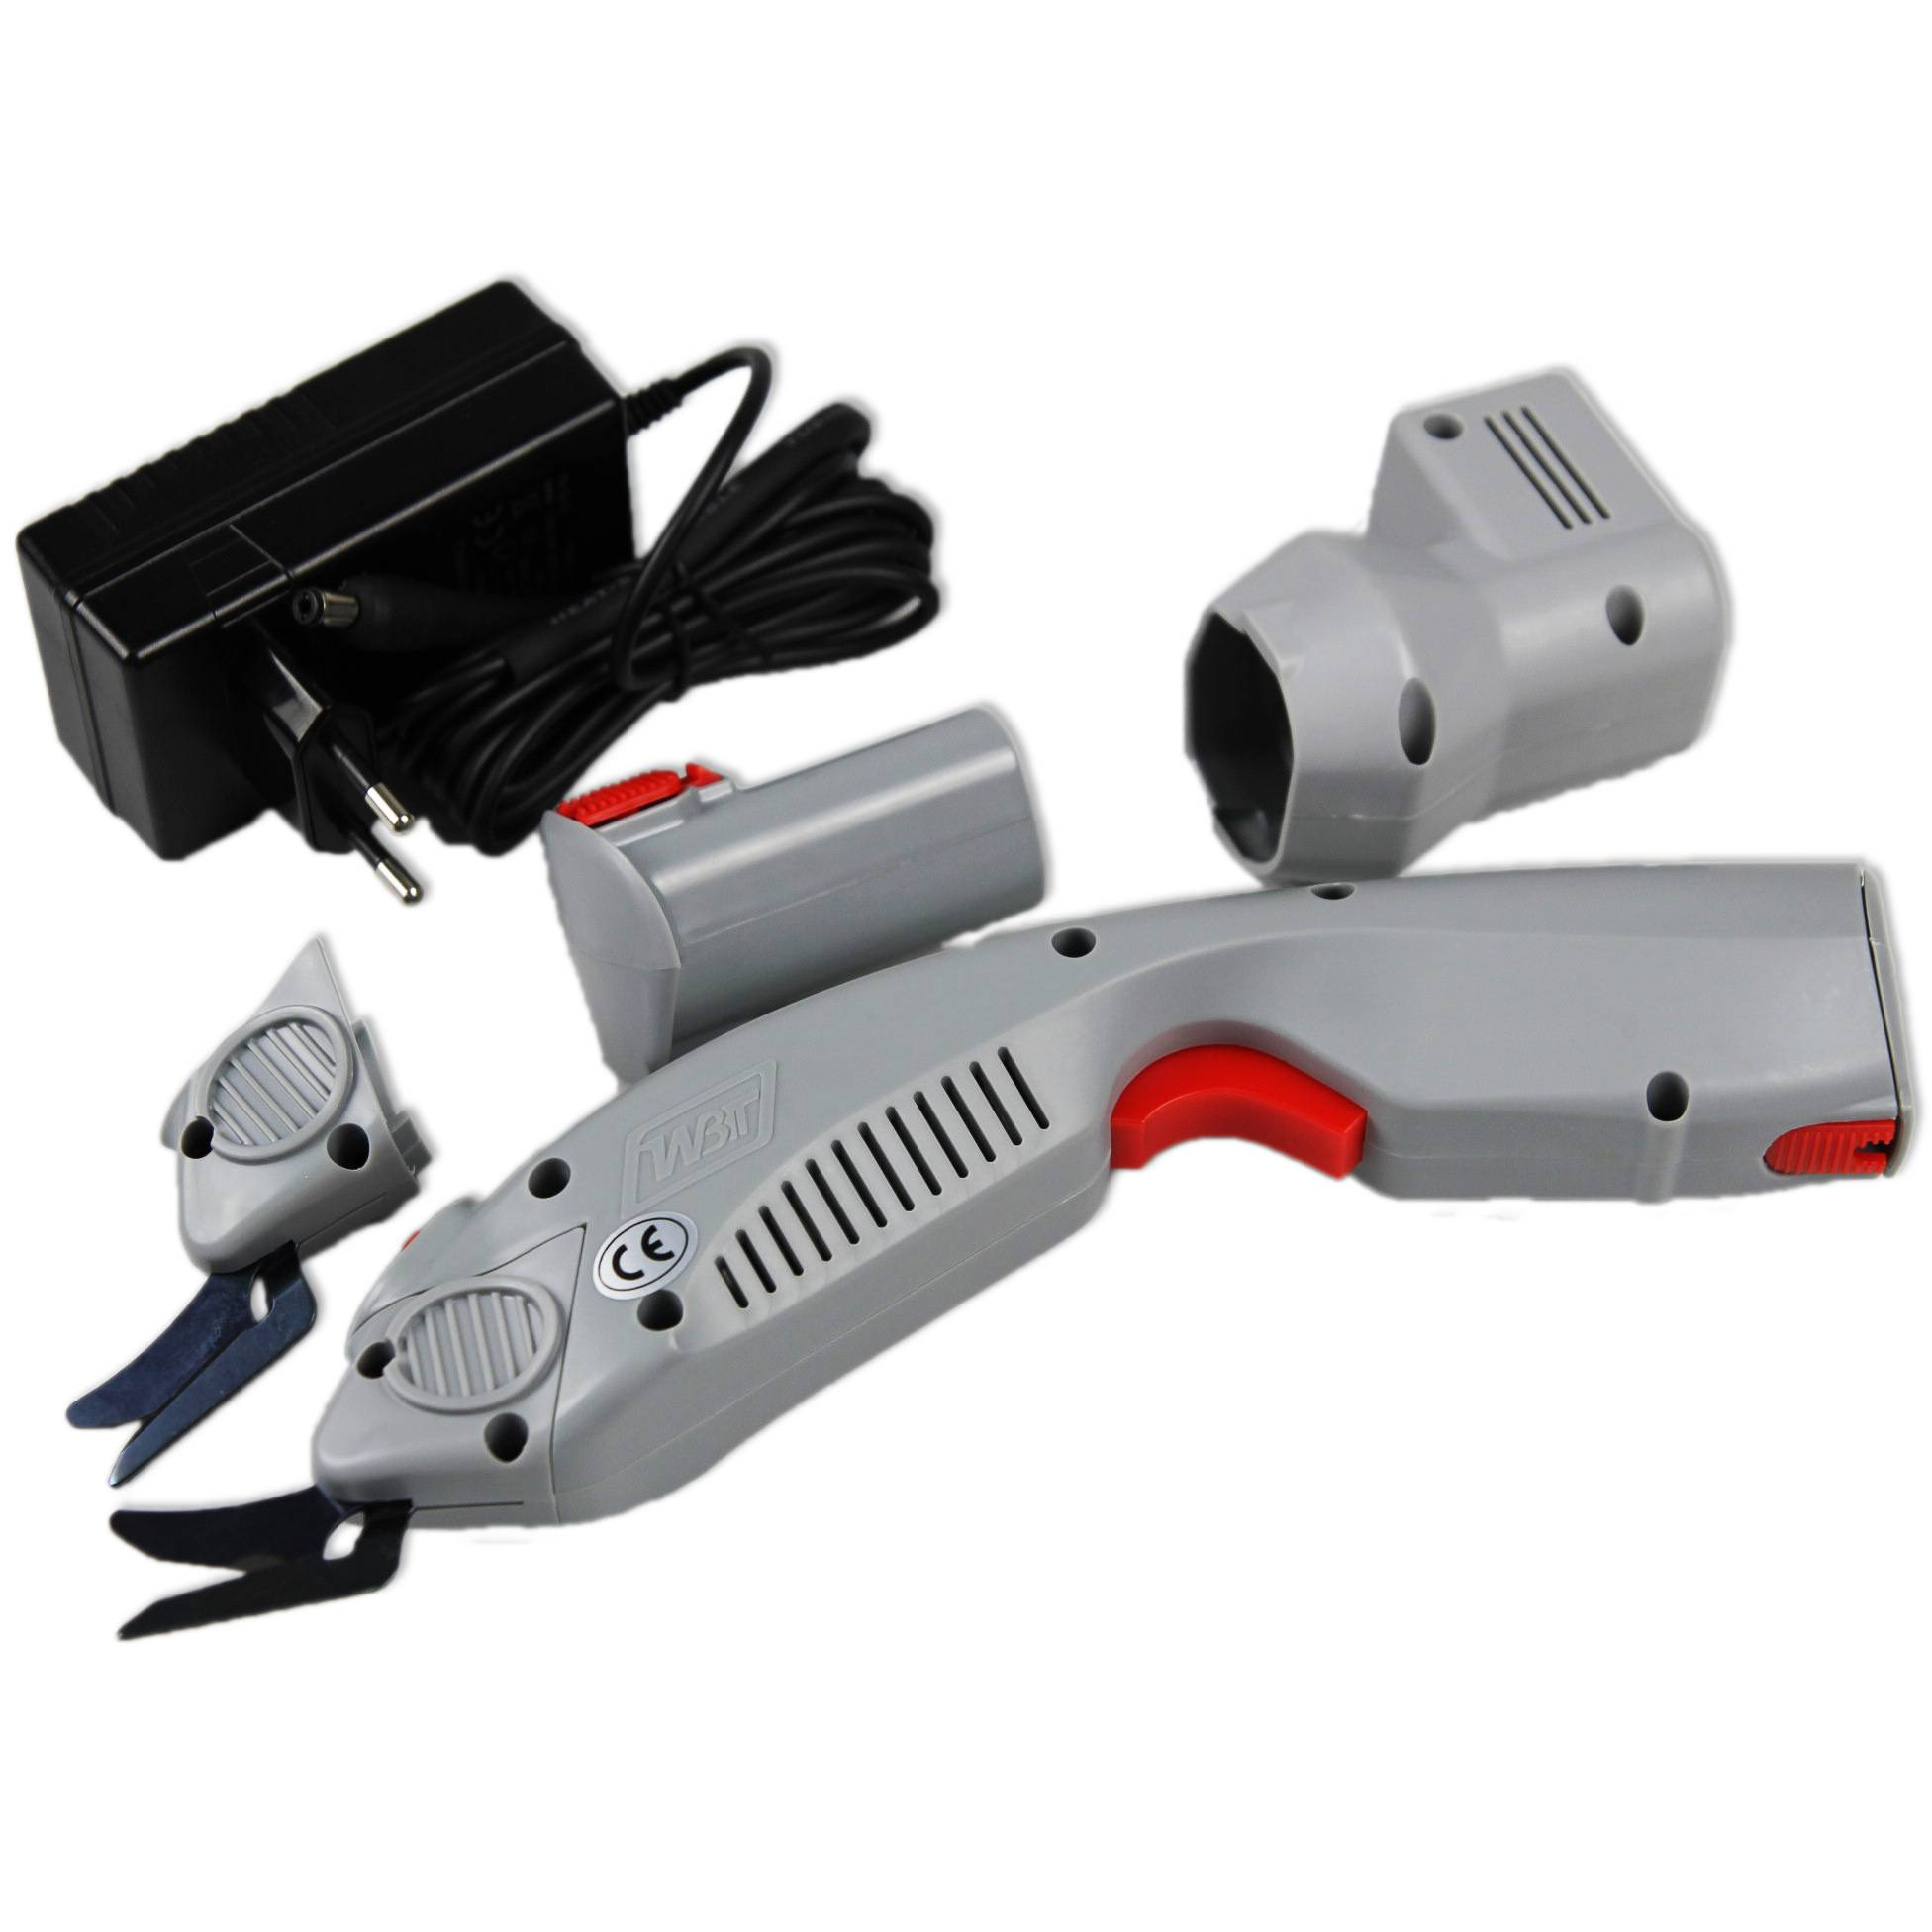 Battery cordless electric scissors